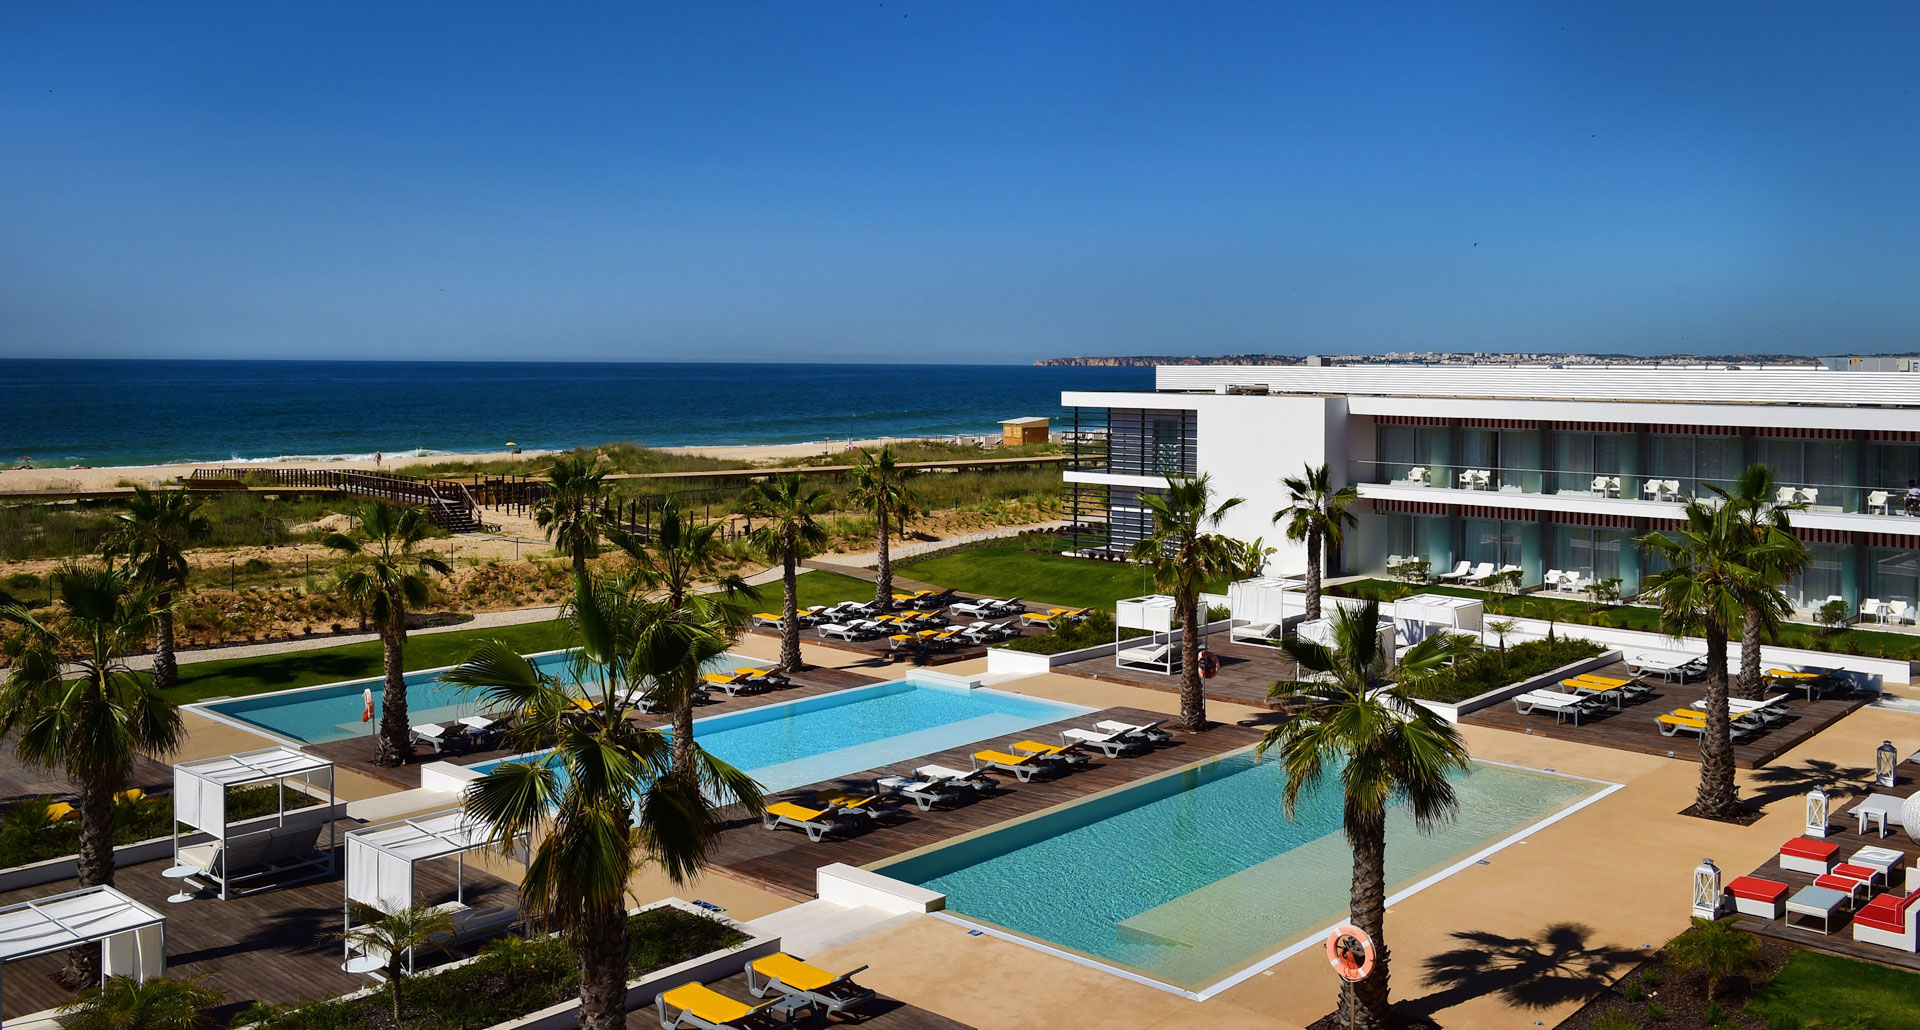 Pestana Alvor South Beach - boutique hotel in Alvor